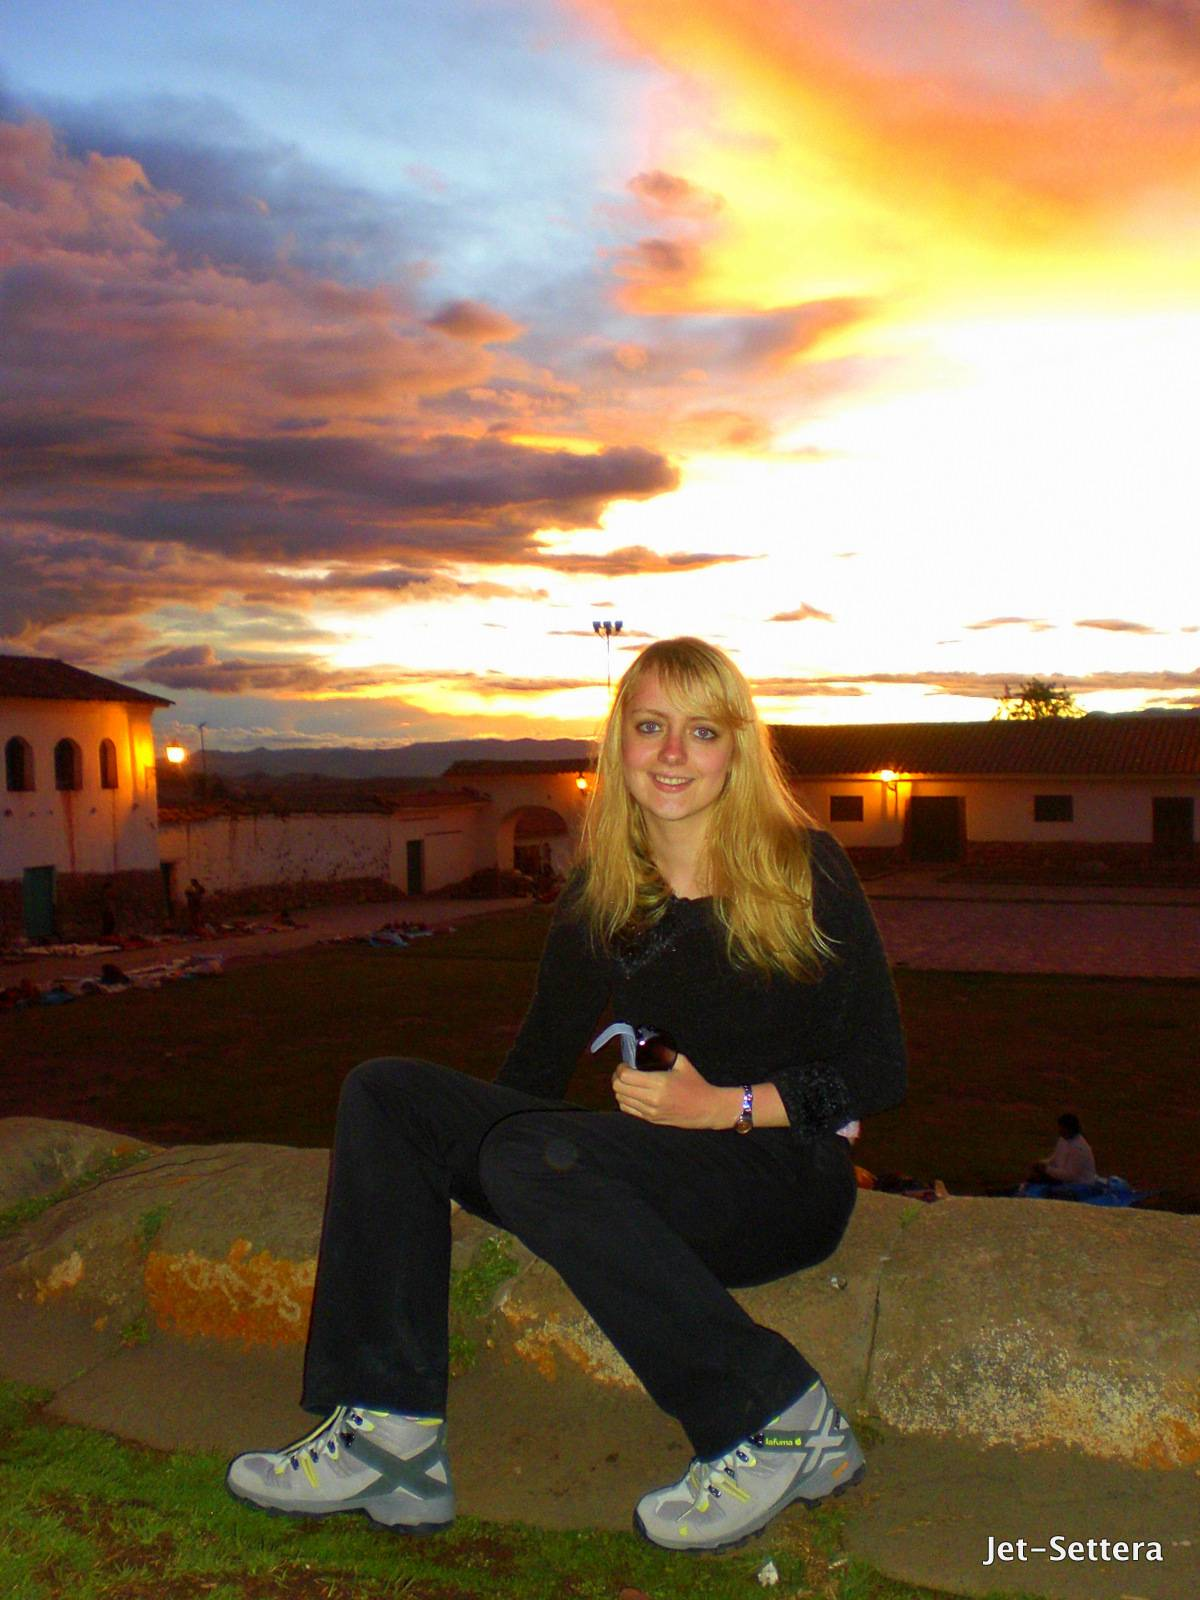 Sunset in Cuzco - Things to Do in Machu Picchu and Beyond